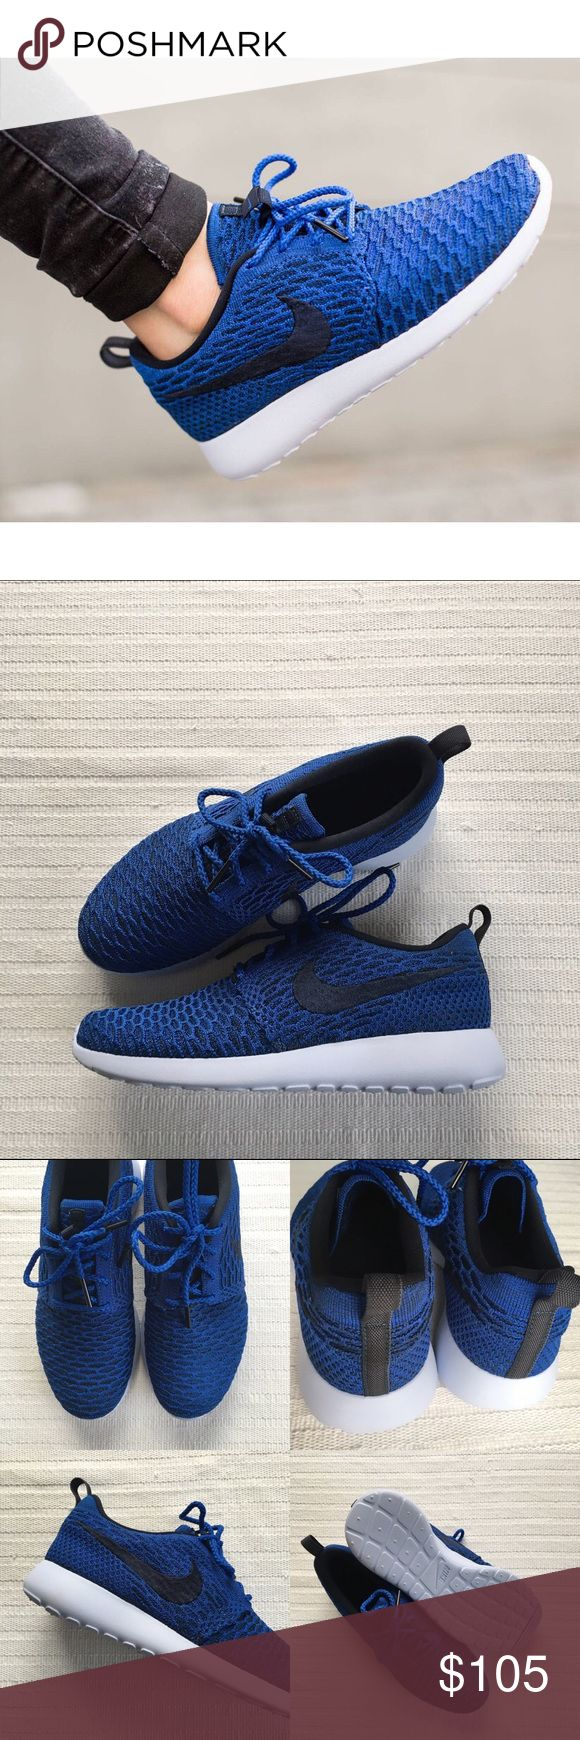 Women's Nike Roshe One Flyknit Royal Blue Sneakers Women's Nike Roshe One Flyknit Royal Blue Sneakers Style/Color: 704927-400  • Women's size 7.5  • NEW in box (no lid) • No trades •100% authentic Nike Shoes Sneakers